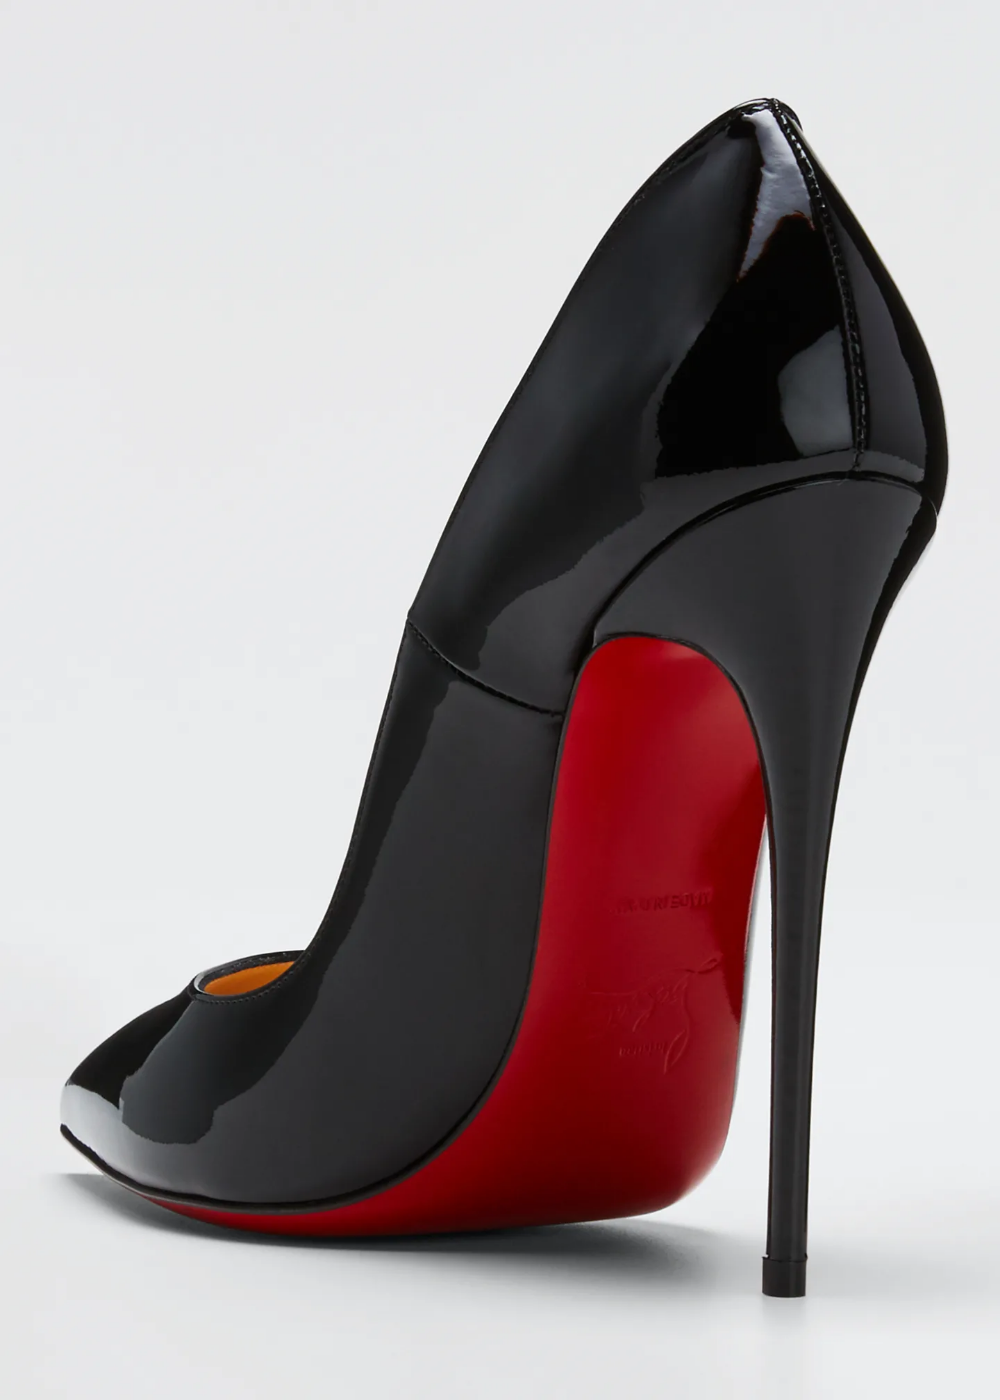 Christian Louboutin So Kate Patent Red